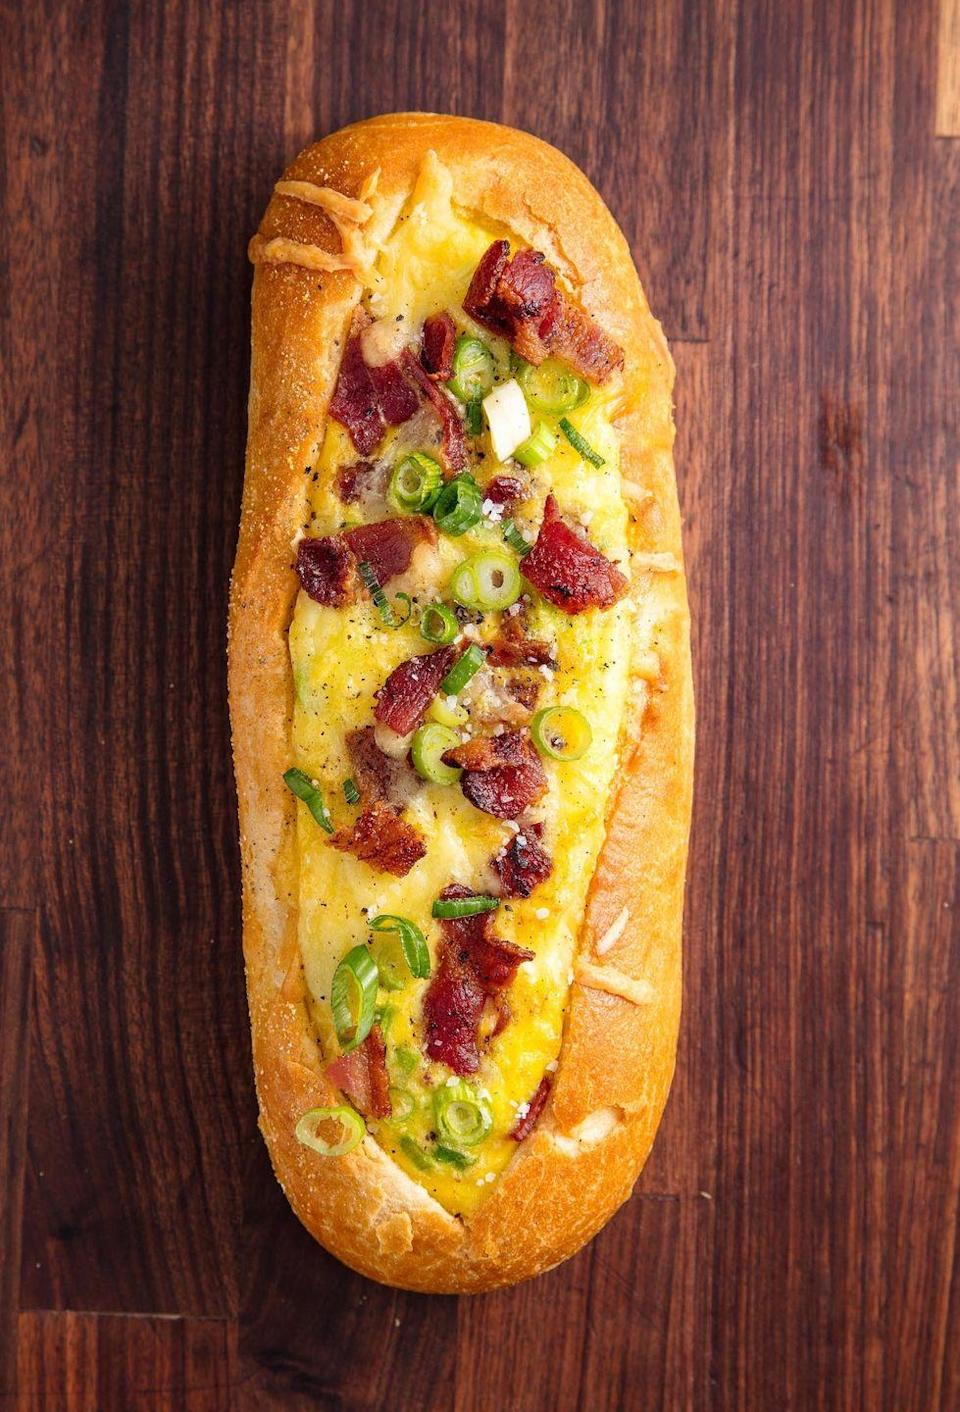 """<p>Bacon, eggs, and cheese. A match made in heaven.</p><p>Get the recipe from <a href=""""/cooking/recipe-ideas/recipes/a50967/breakfast-stuffed-bread-recipe/"""" data-ylk=""""slk:Delish"""" class=""""link rapid-noclick-resp"""">Delish</a>.</p>"""